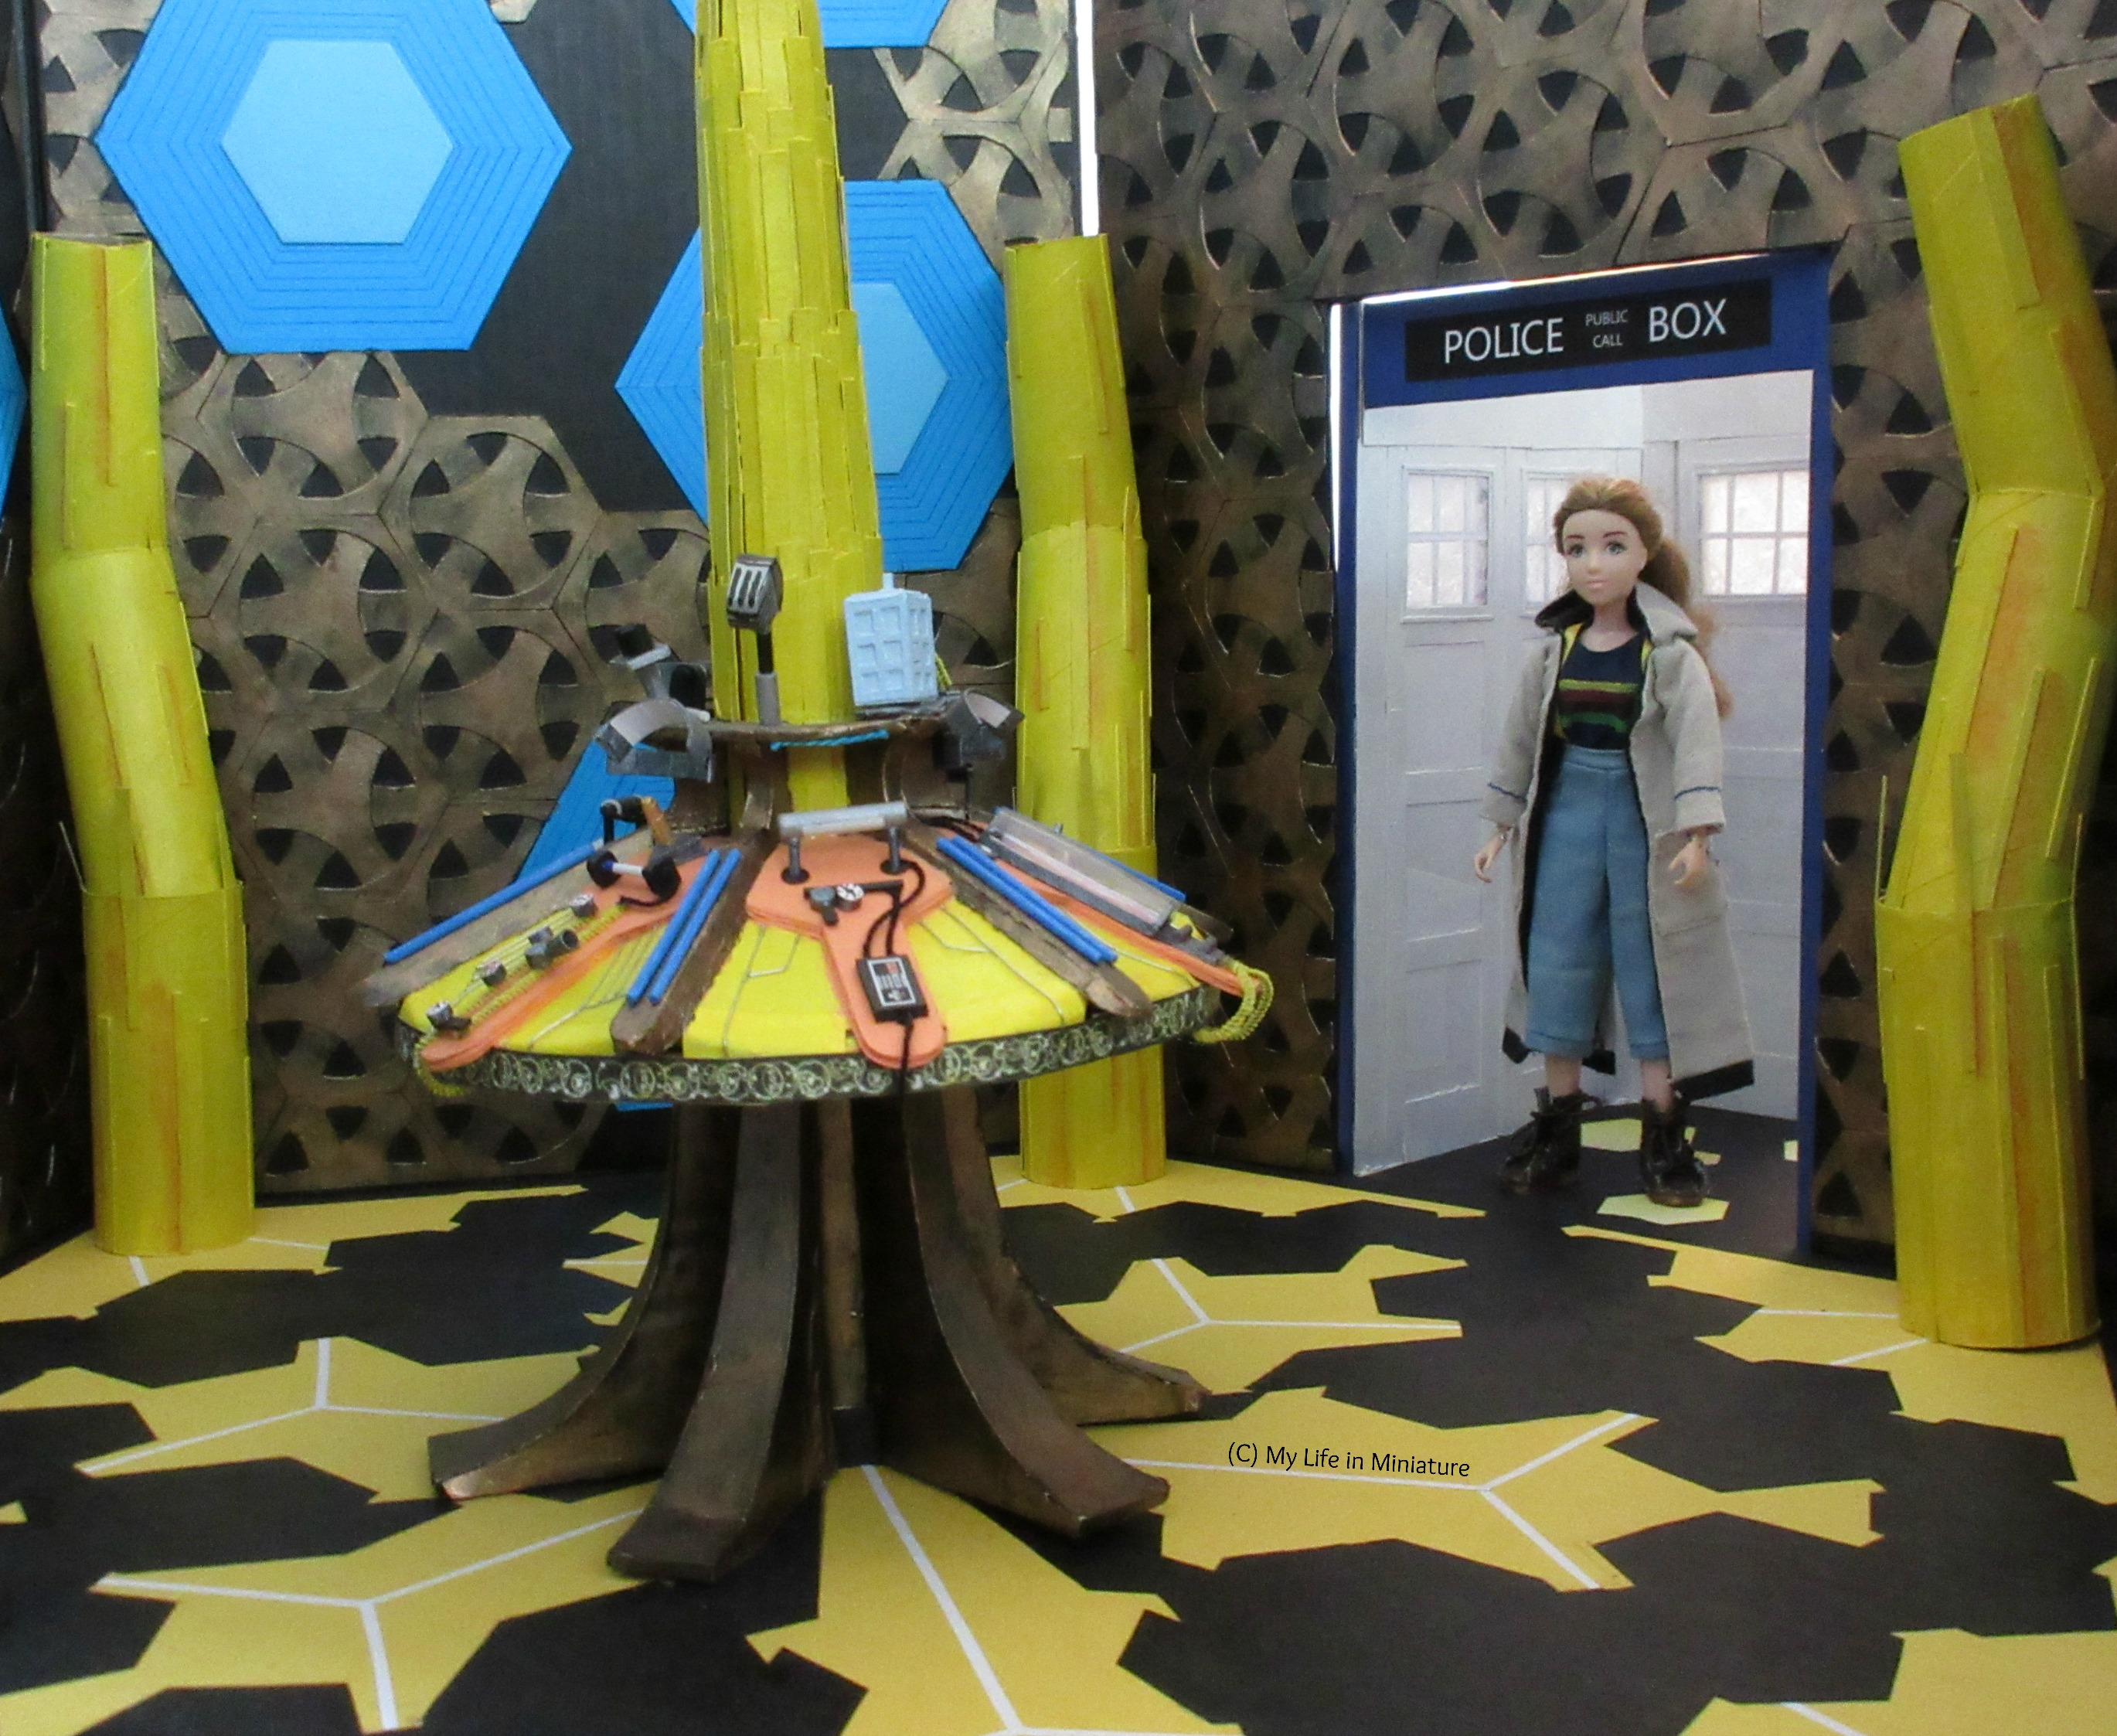 Sarah stands in the entryway of the TARDIS in Thirteenth Doctor cosplay, looking at the central console. Shot is taken at eye level.